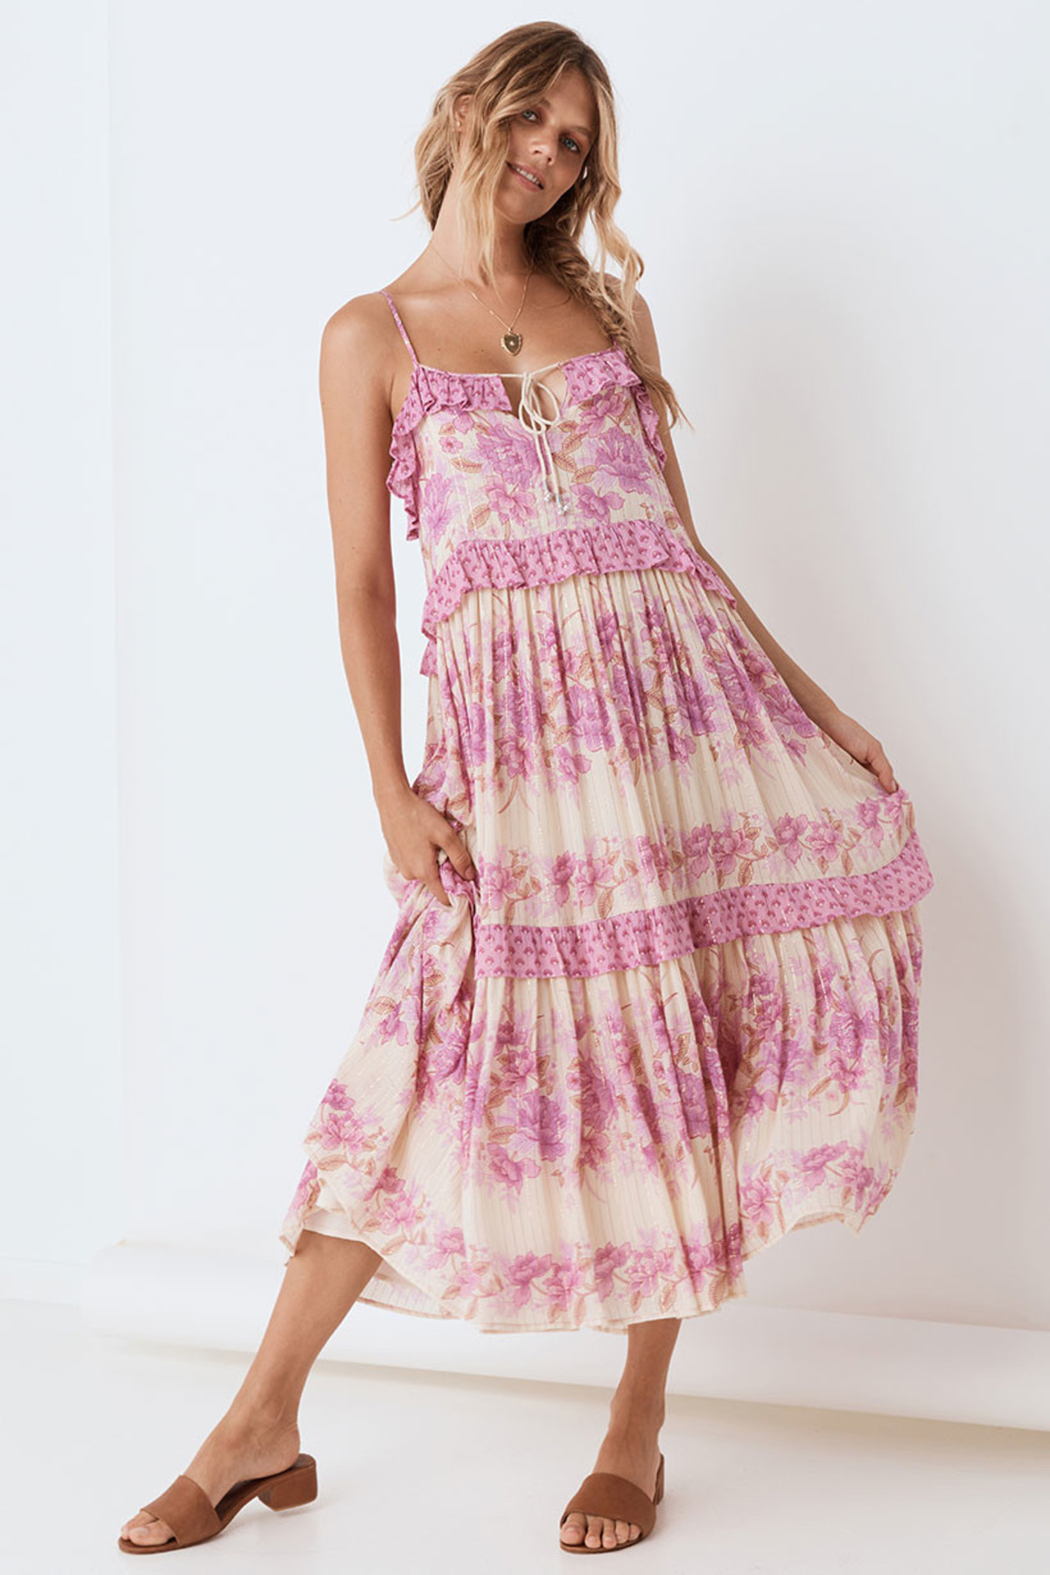 Spell & the Gypsy Collective Coco Lei Strappy Gown in Lilac - Main Image